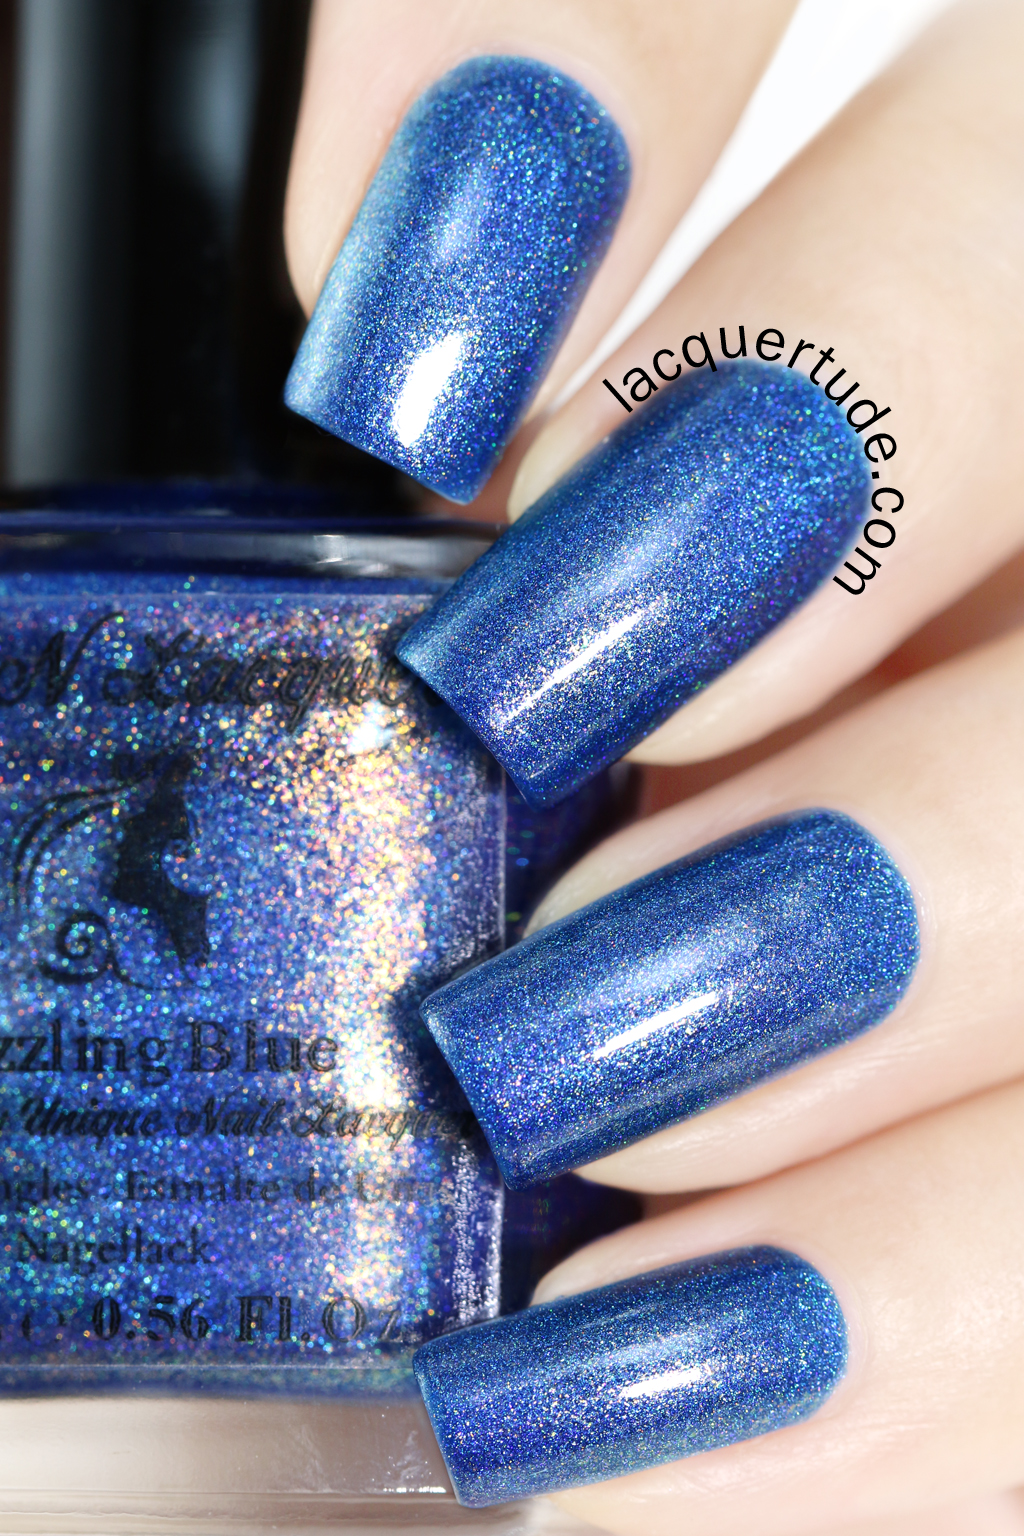 FUN-Lacquer-Dazzling Blue-Swatch1